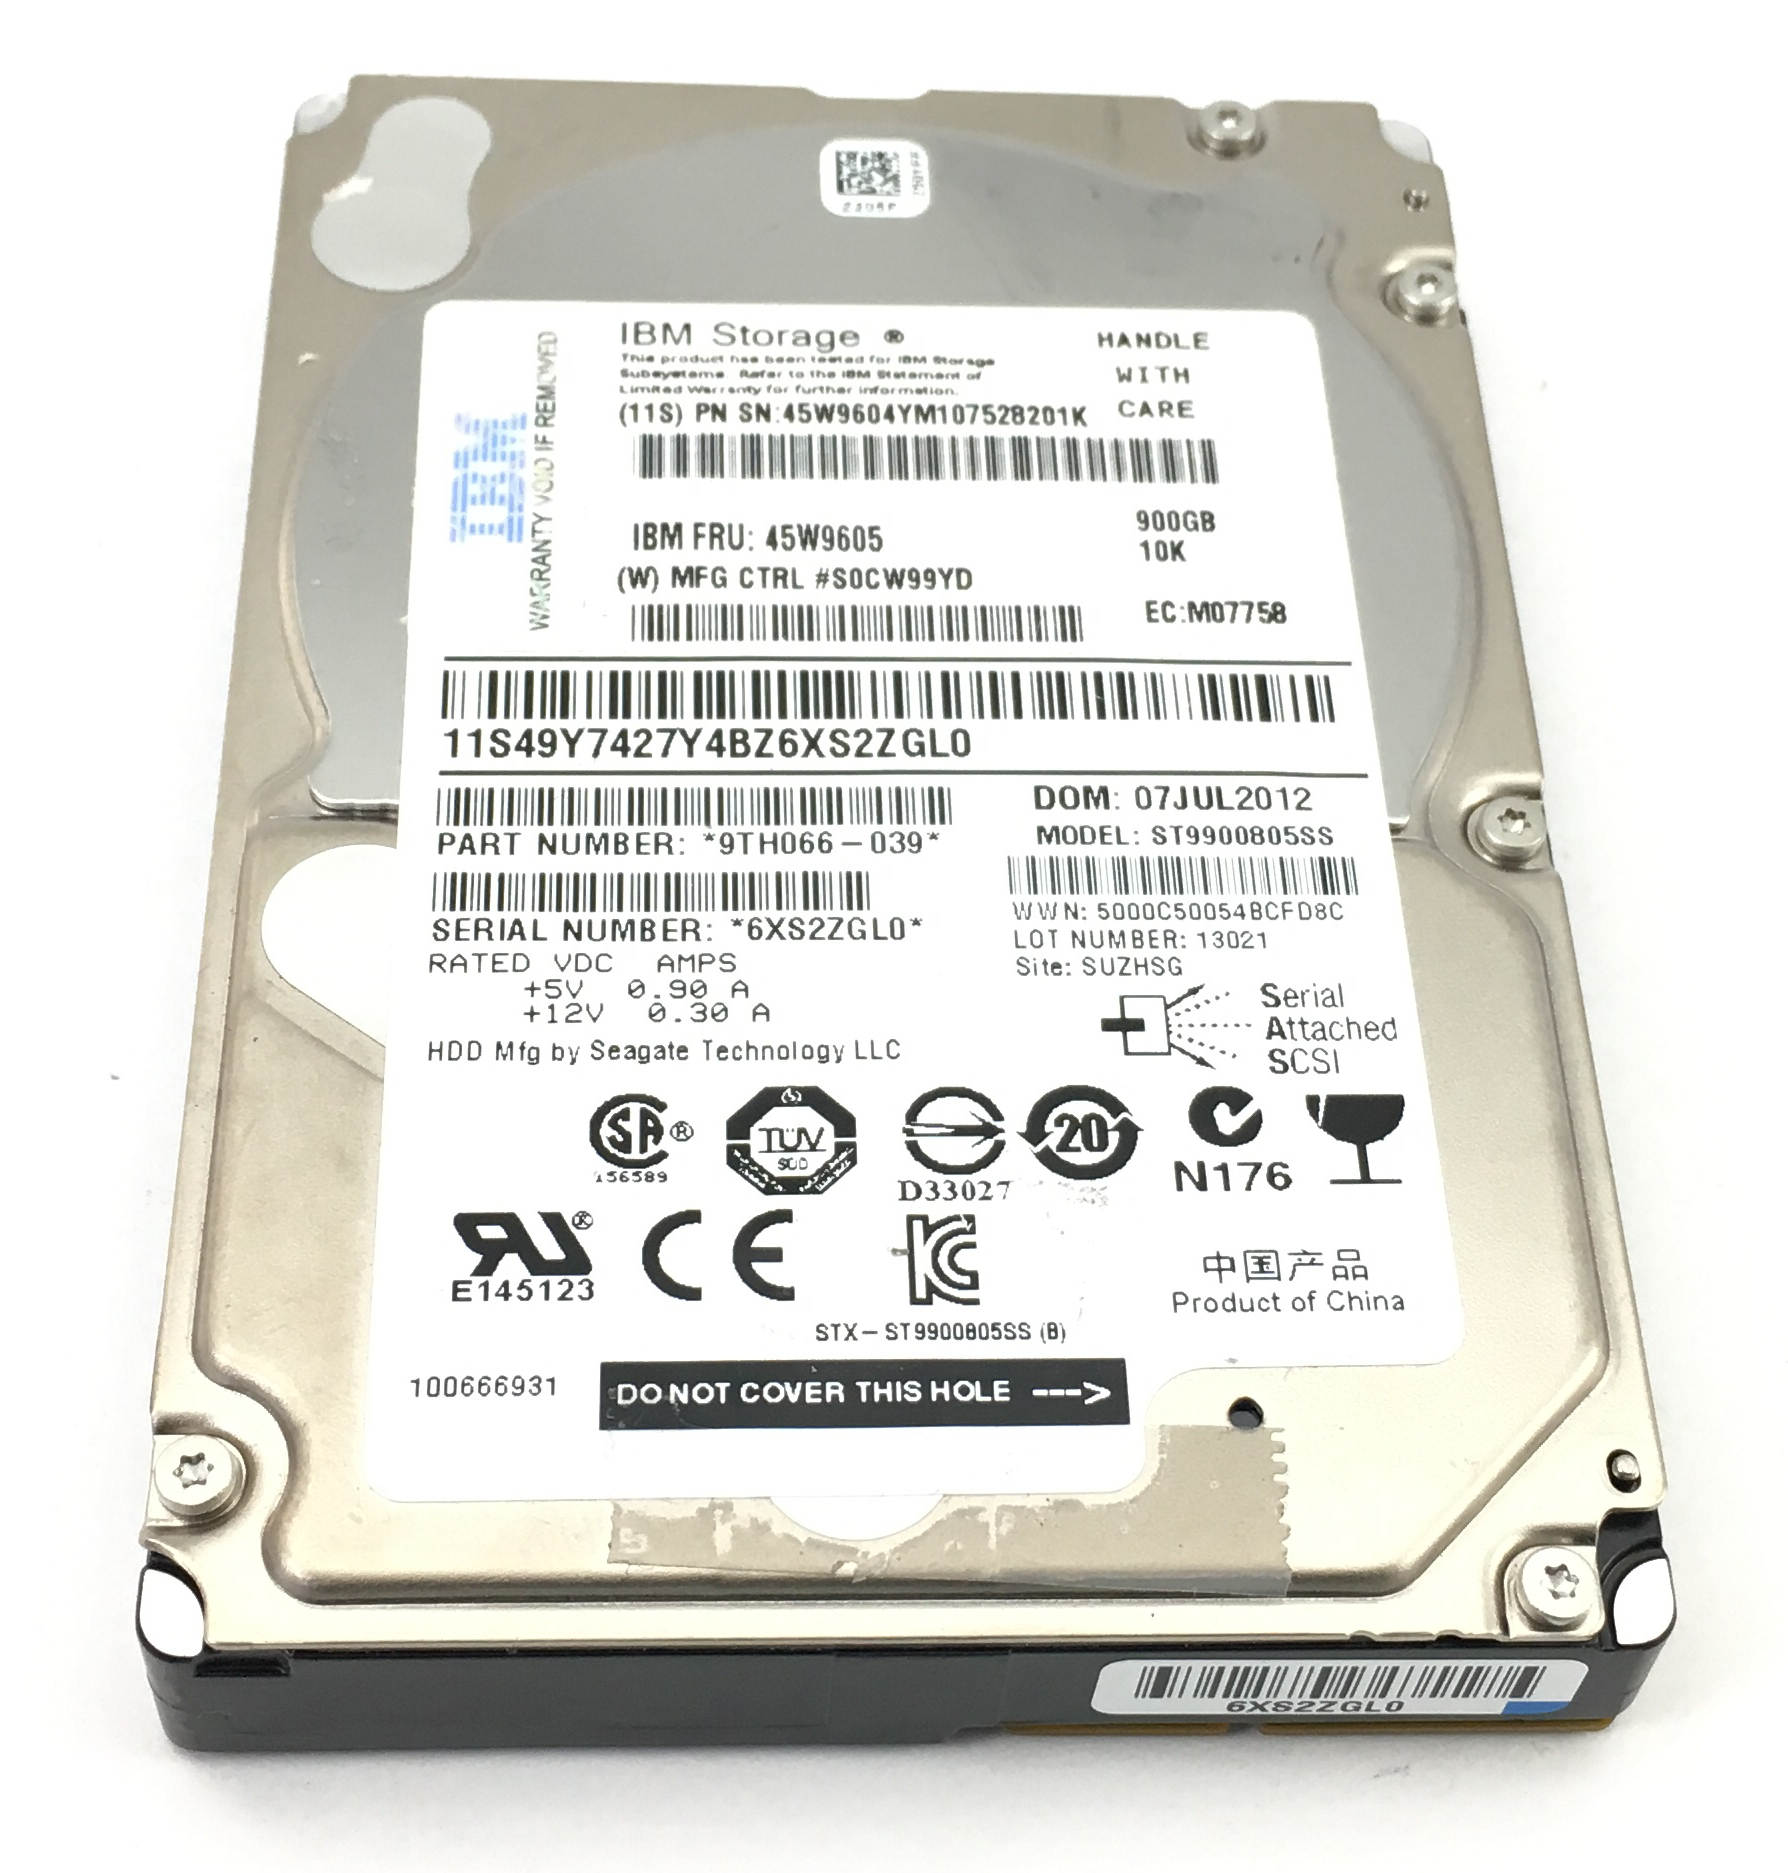 IBM 900GB 10K SAS 2.5'' HARD DRIVE (45W9605)